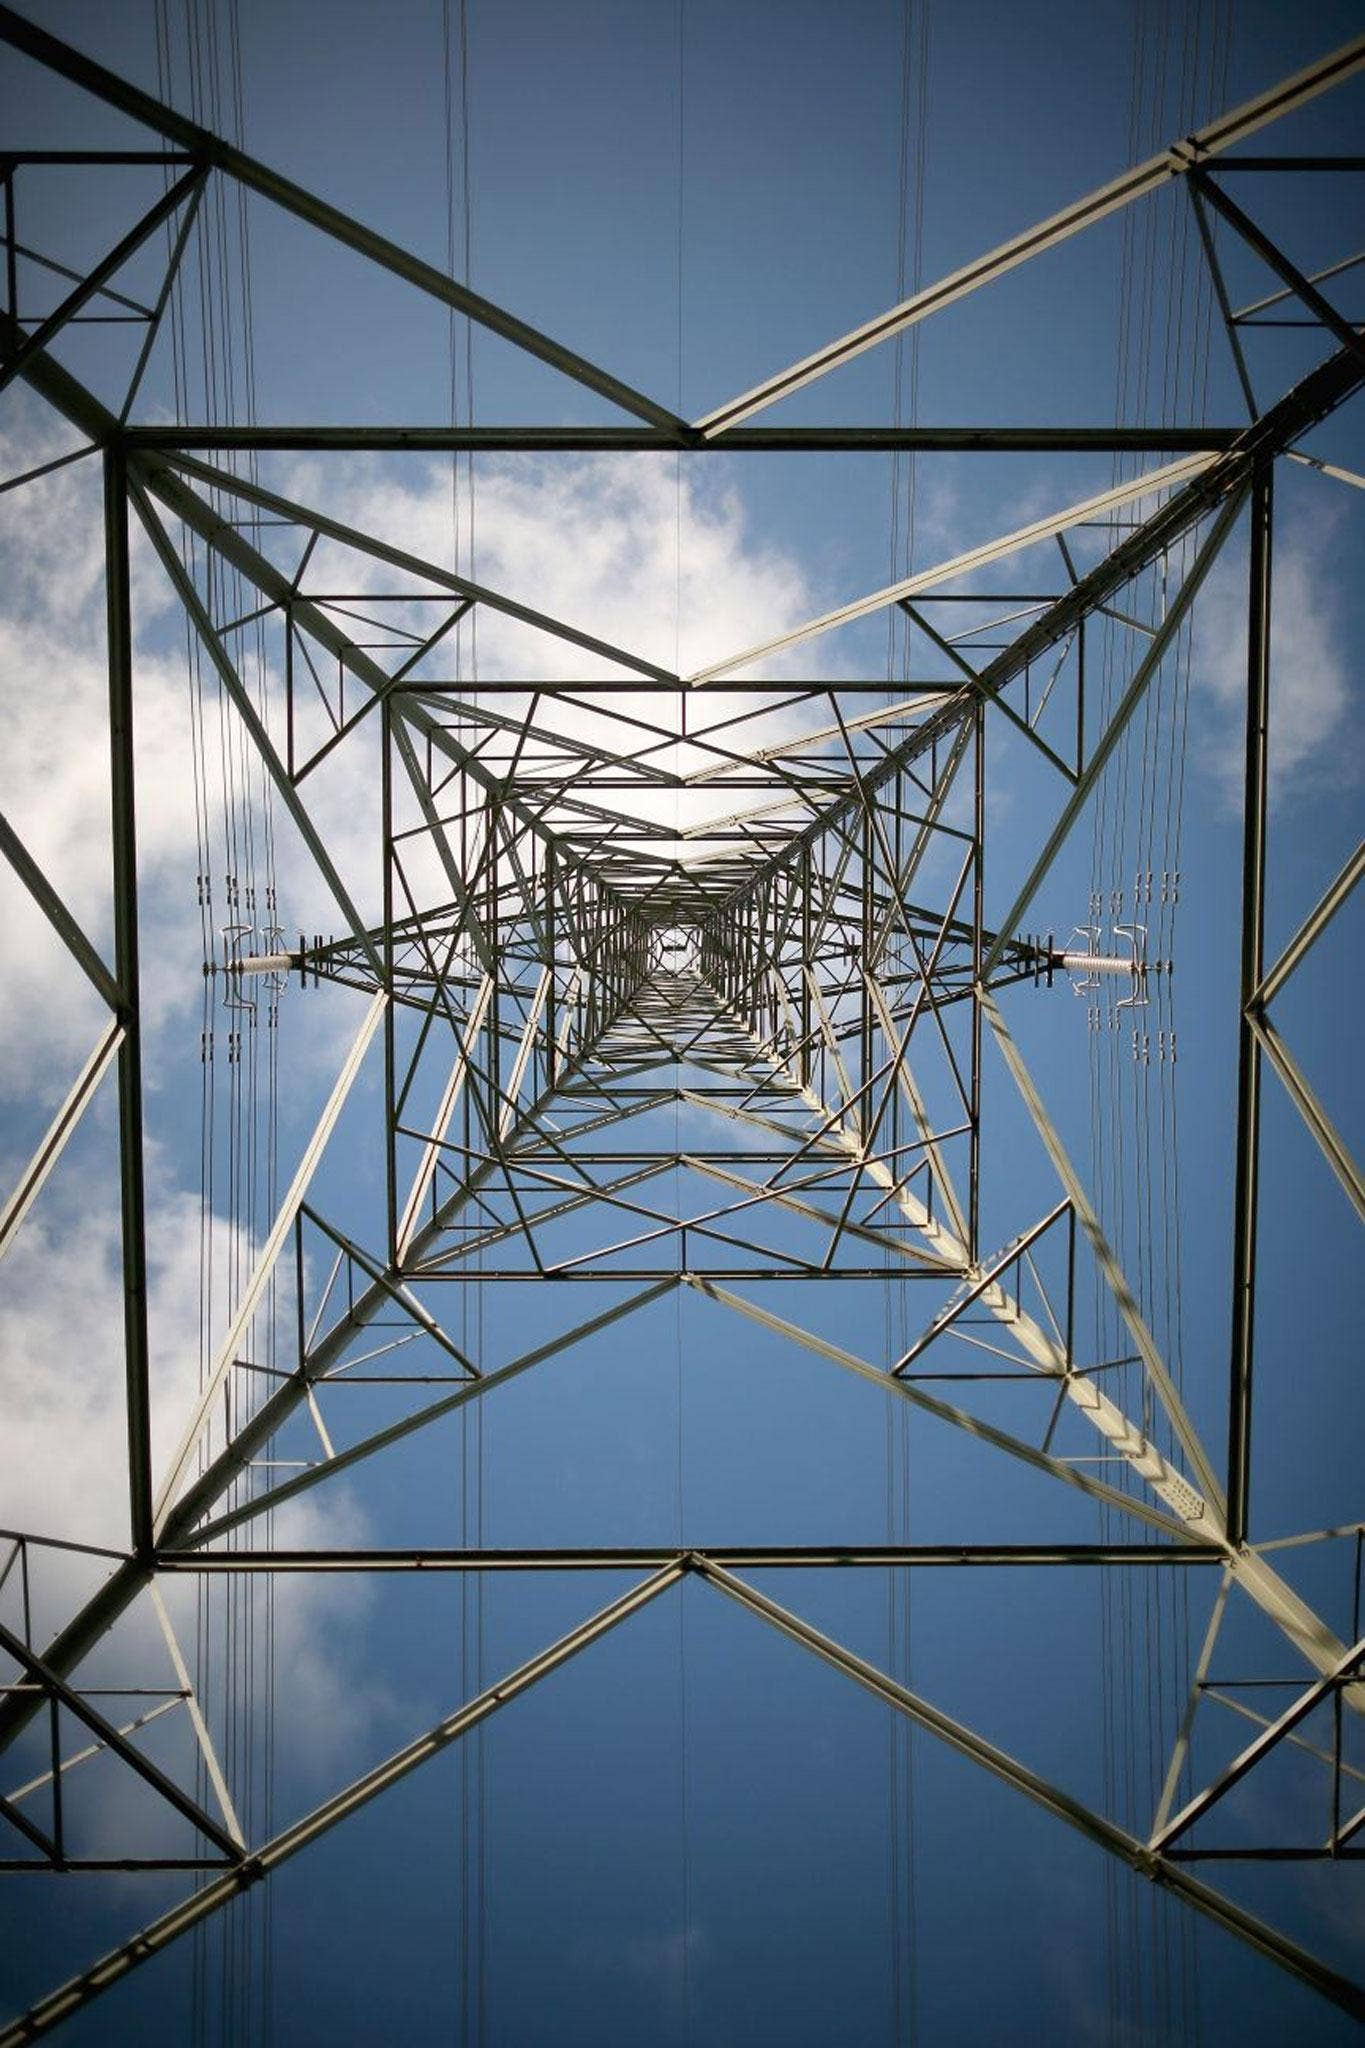 Pylon the agony: the big suppliers to Britain's power grid have provoked millions of complaints